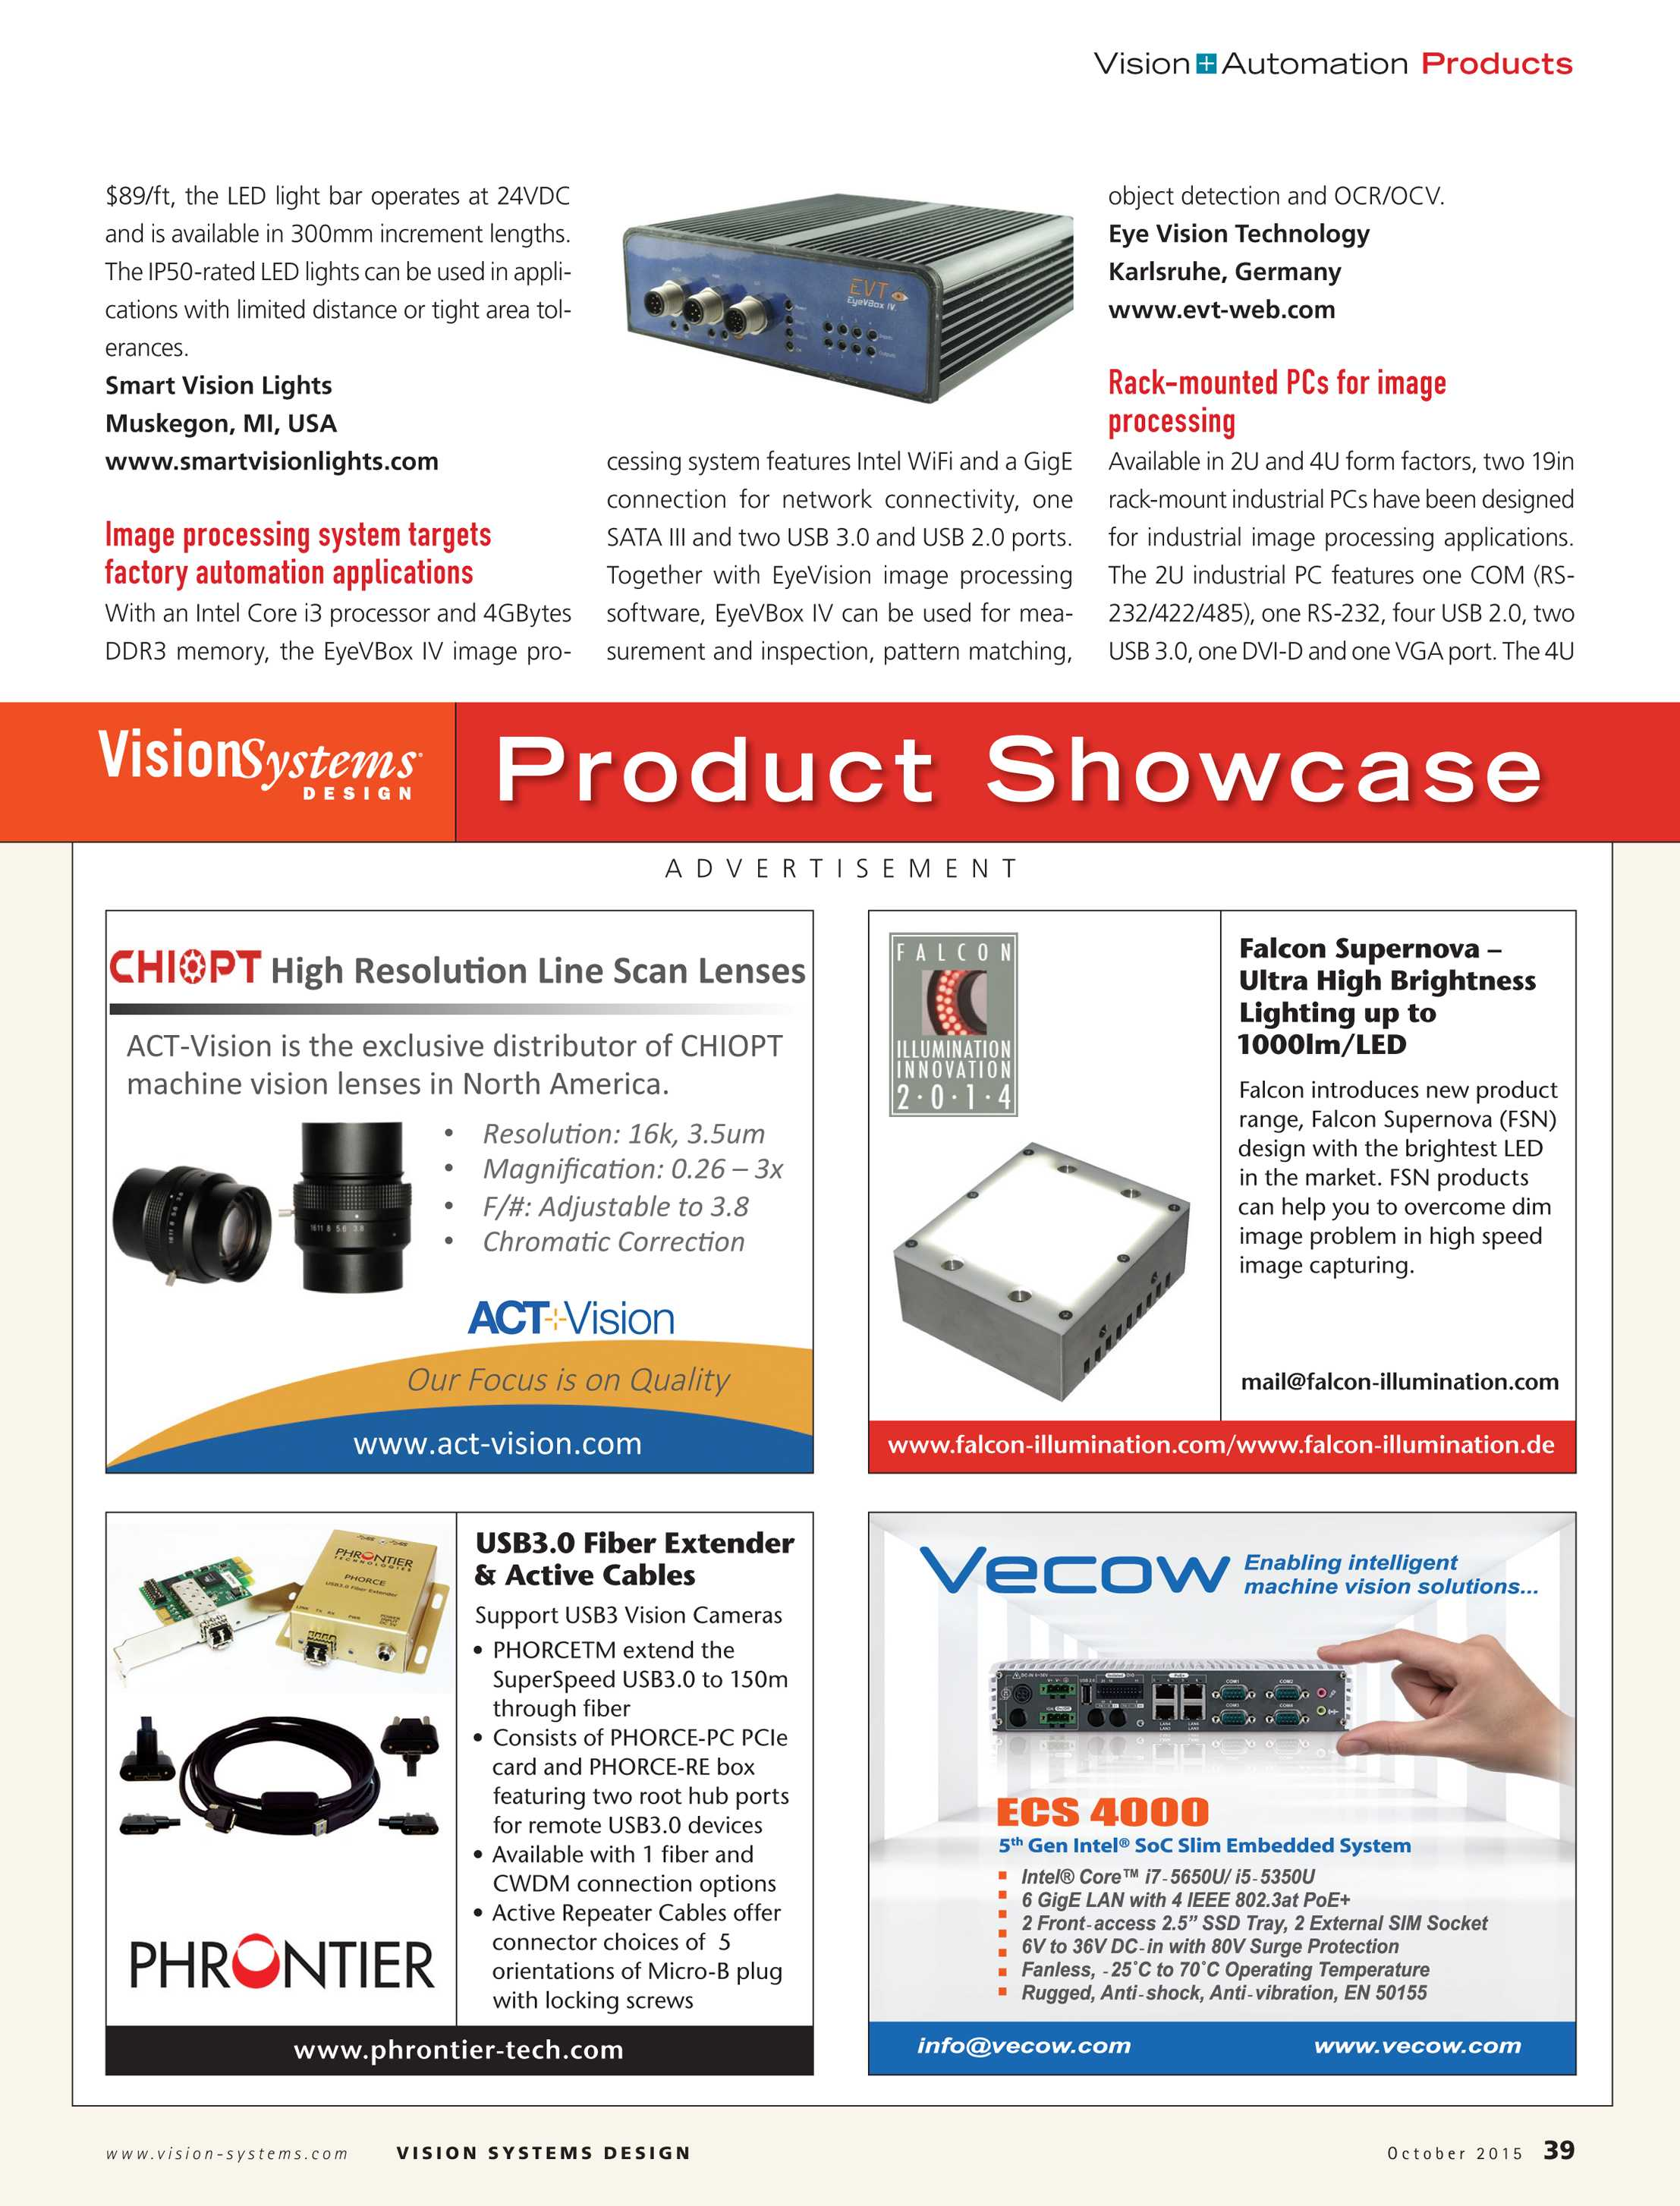 Vision Systems - October 2015 - page 39